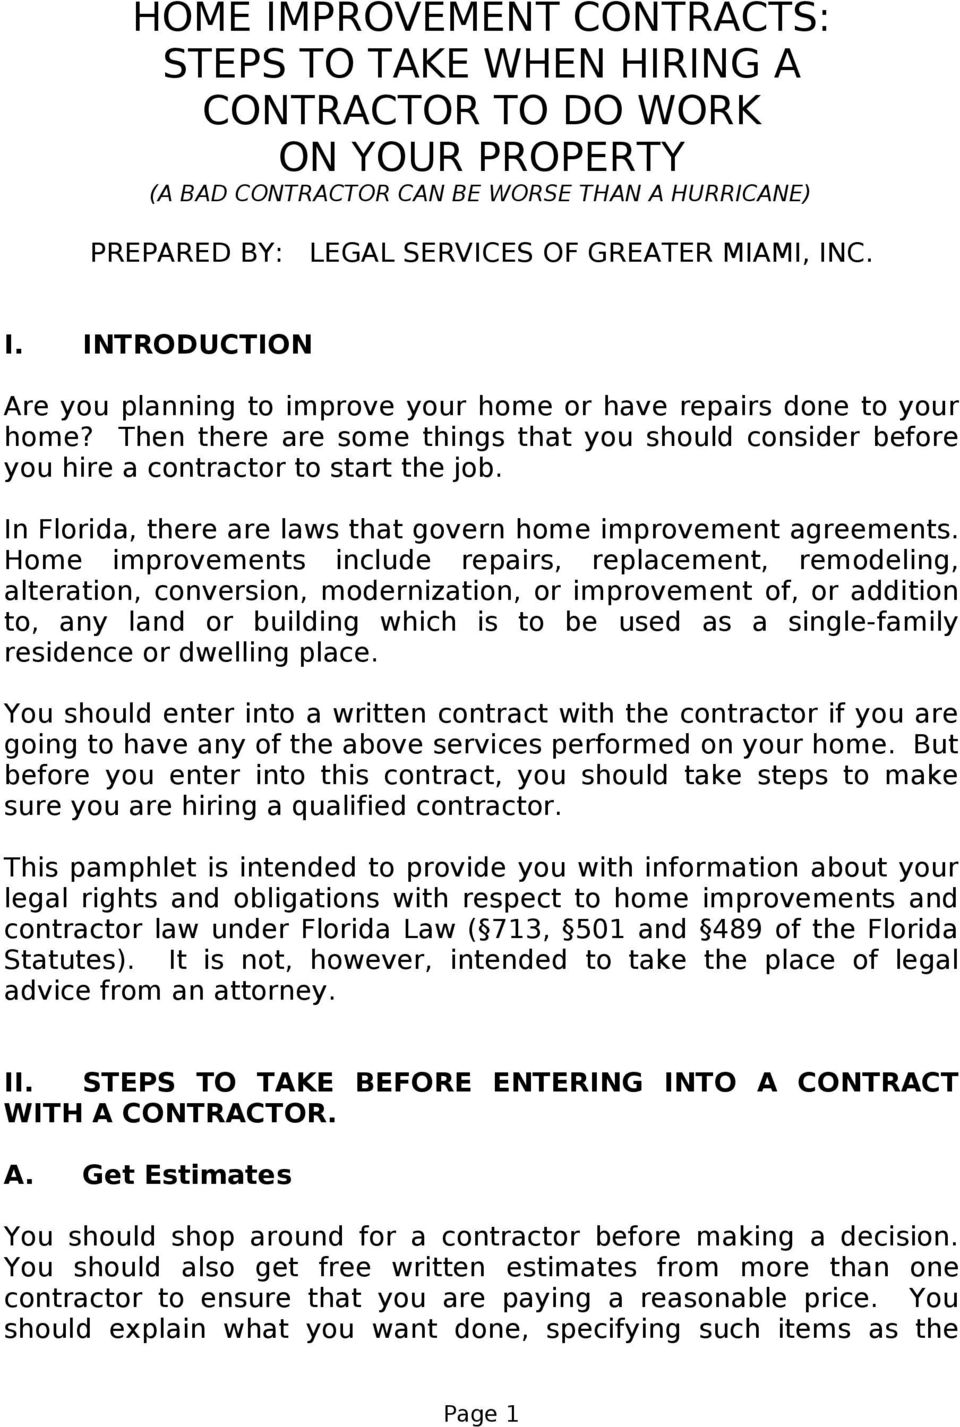 HOME IMPROVEMENT CONTRACTS: STEPS TO TAKE WHEN HIRING A